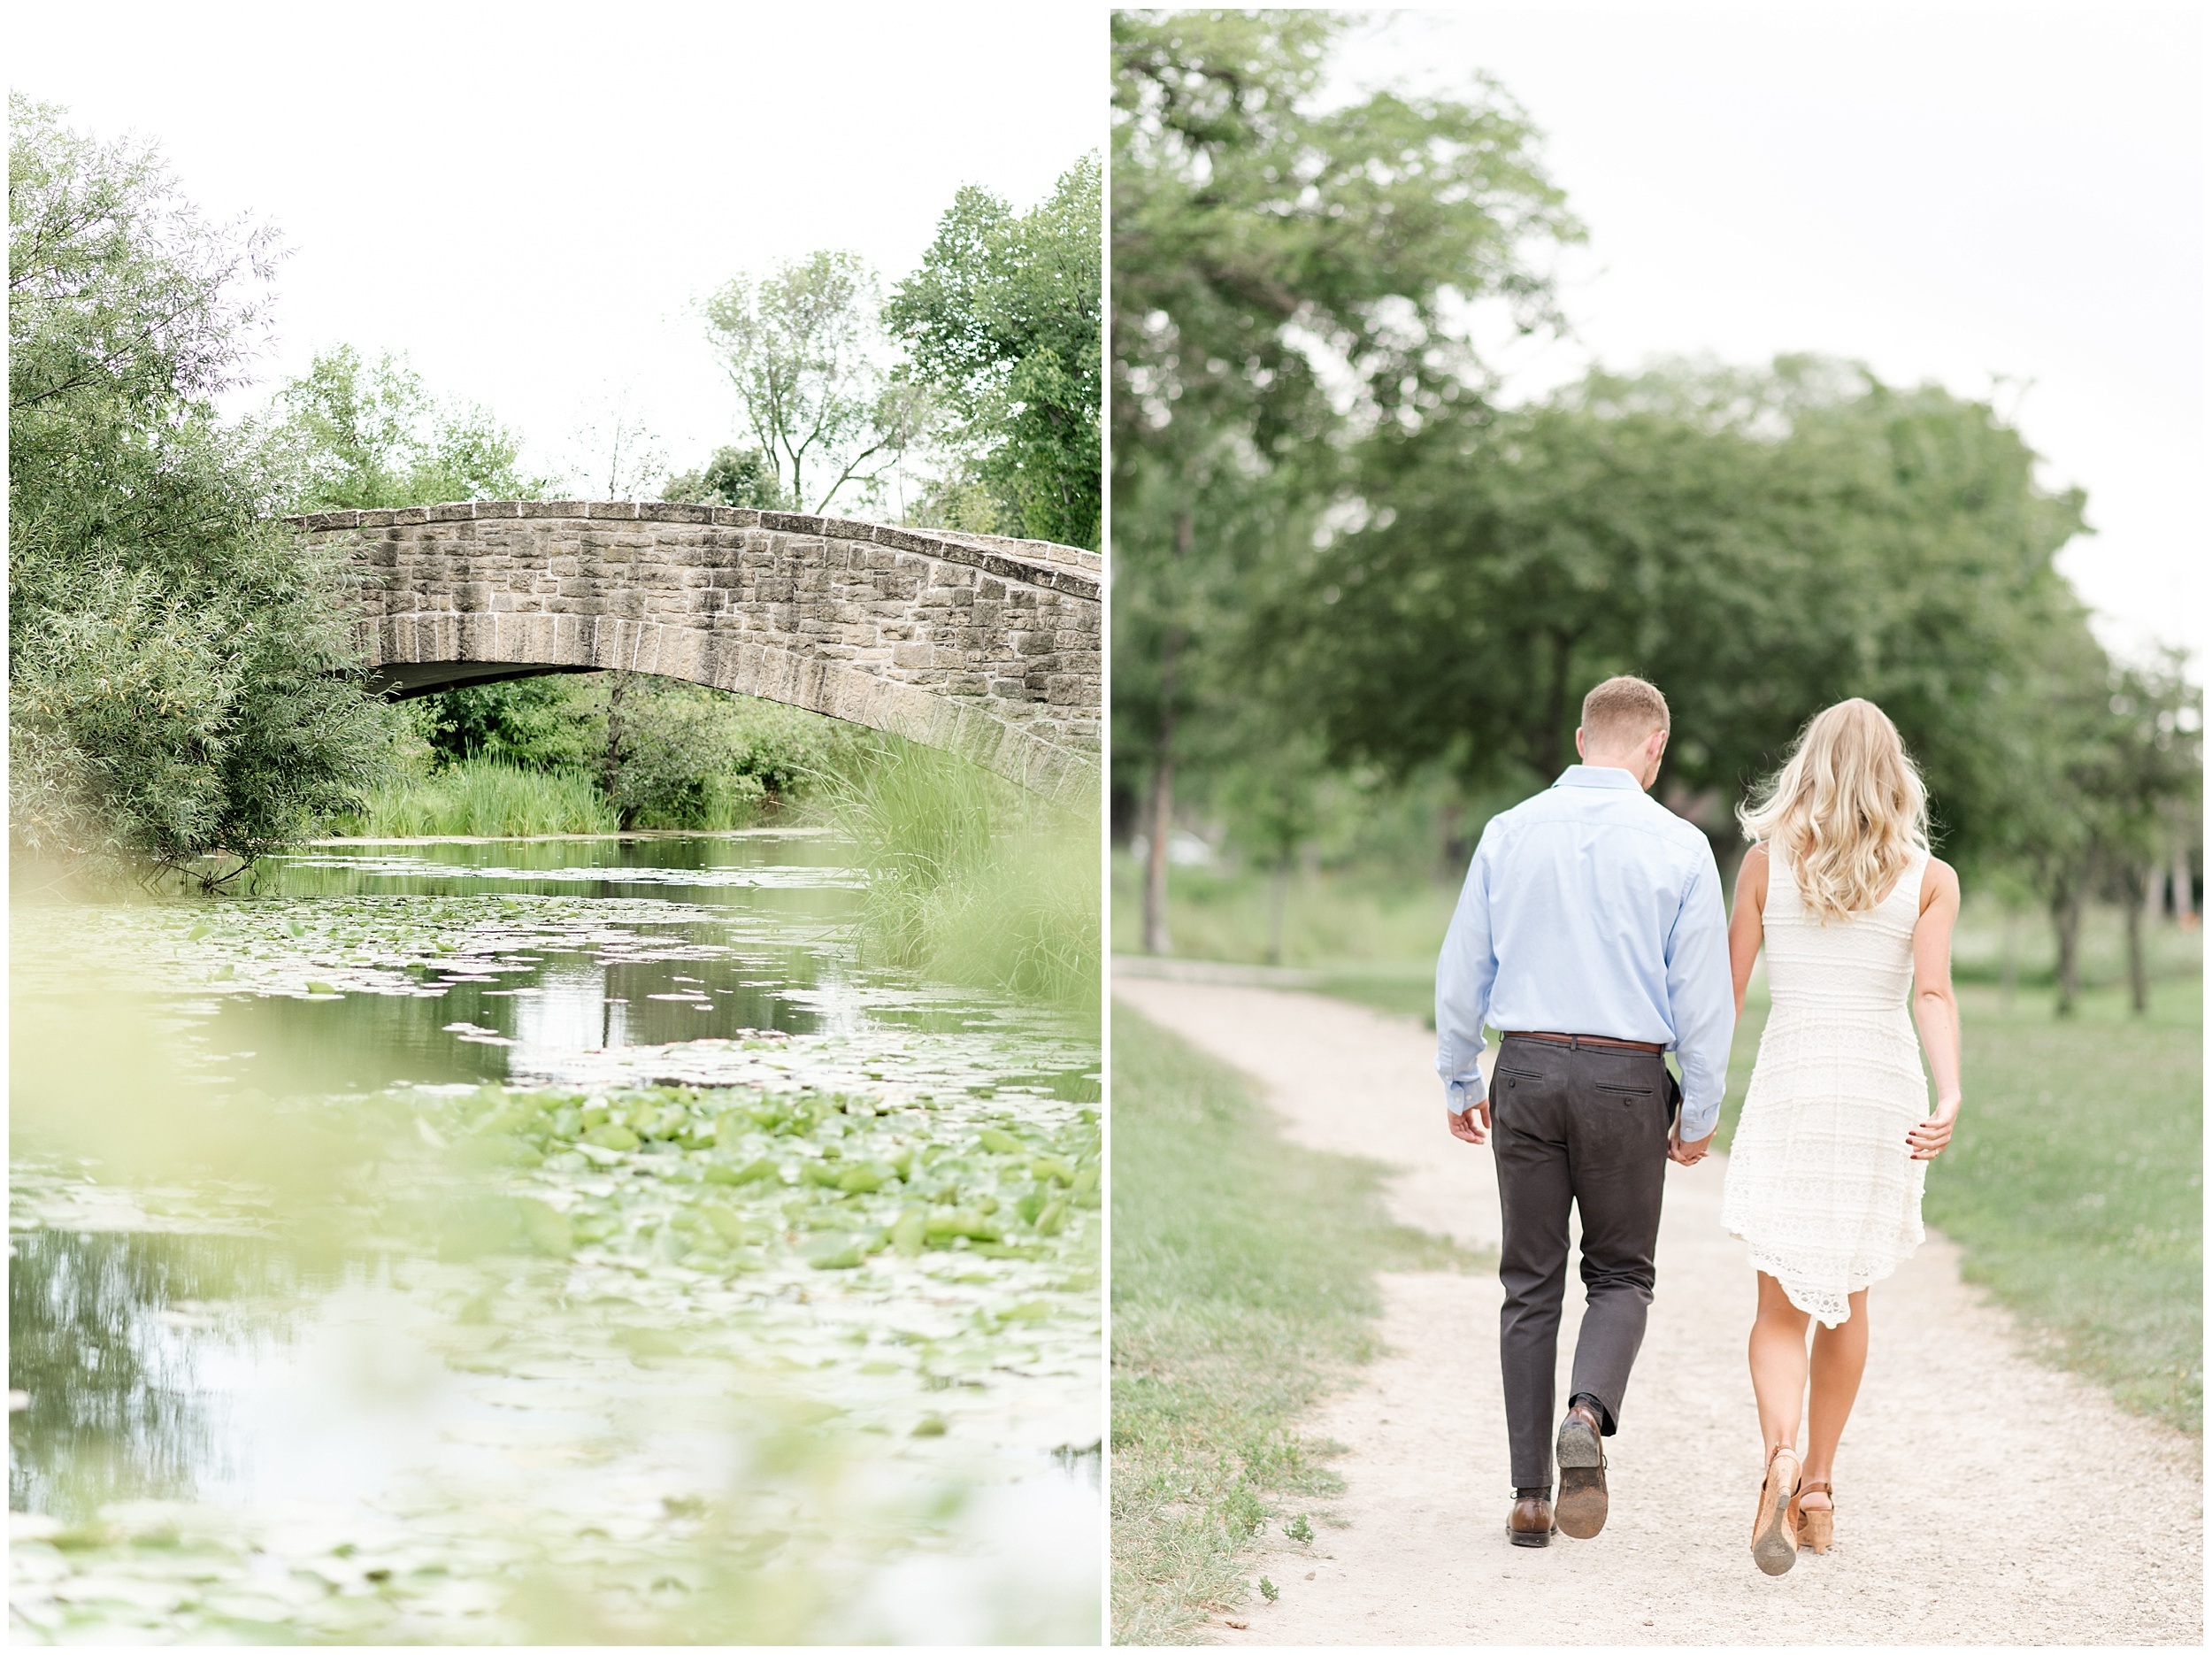 tenney-park-engagement-session-madison-wisconsin-bright-light-airy-wedding-photographer_0010.jpg